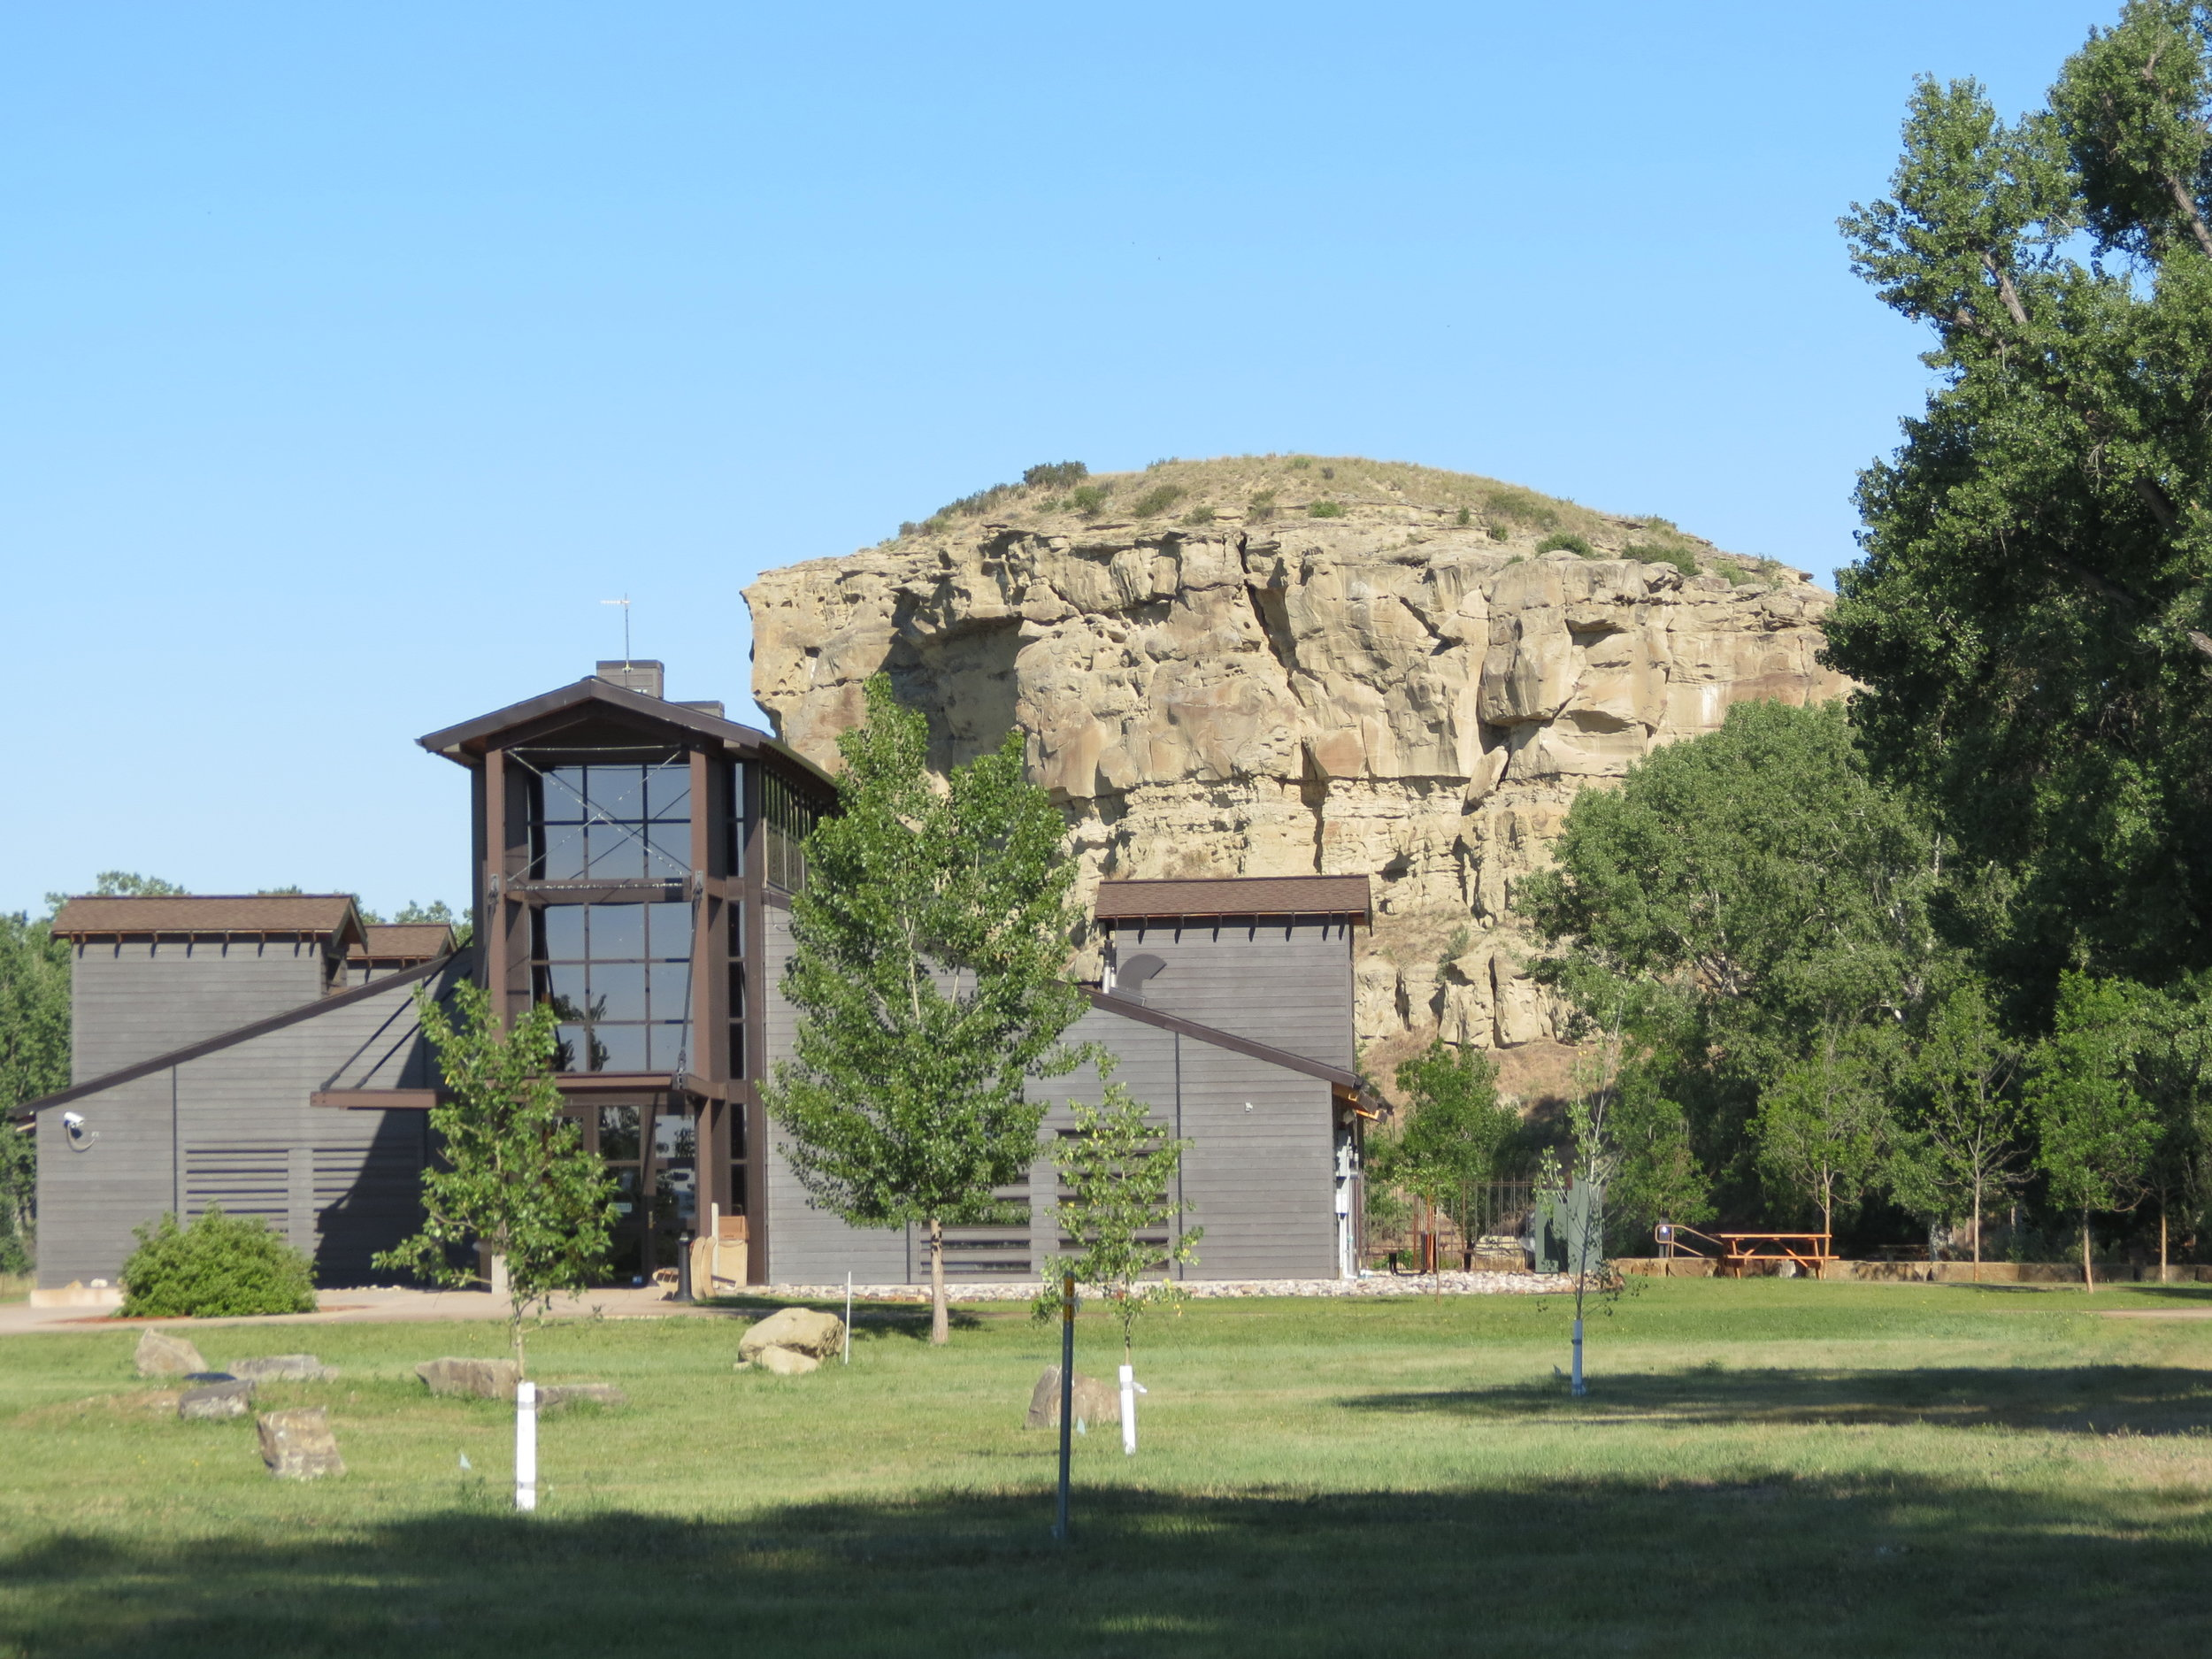 Pompey's Pillar National Monument  -on the Lewis & Clark expedition ItineraryMontana - 2012